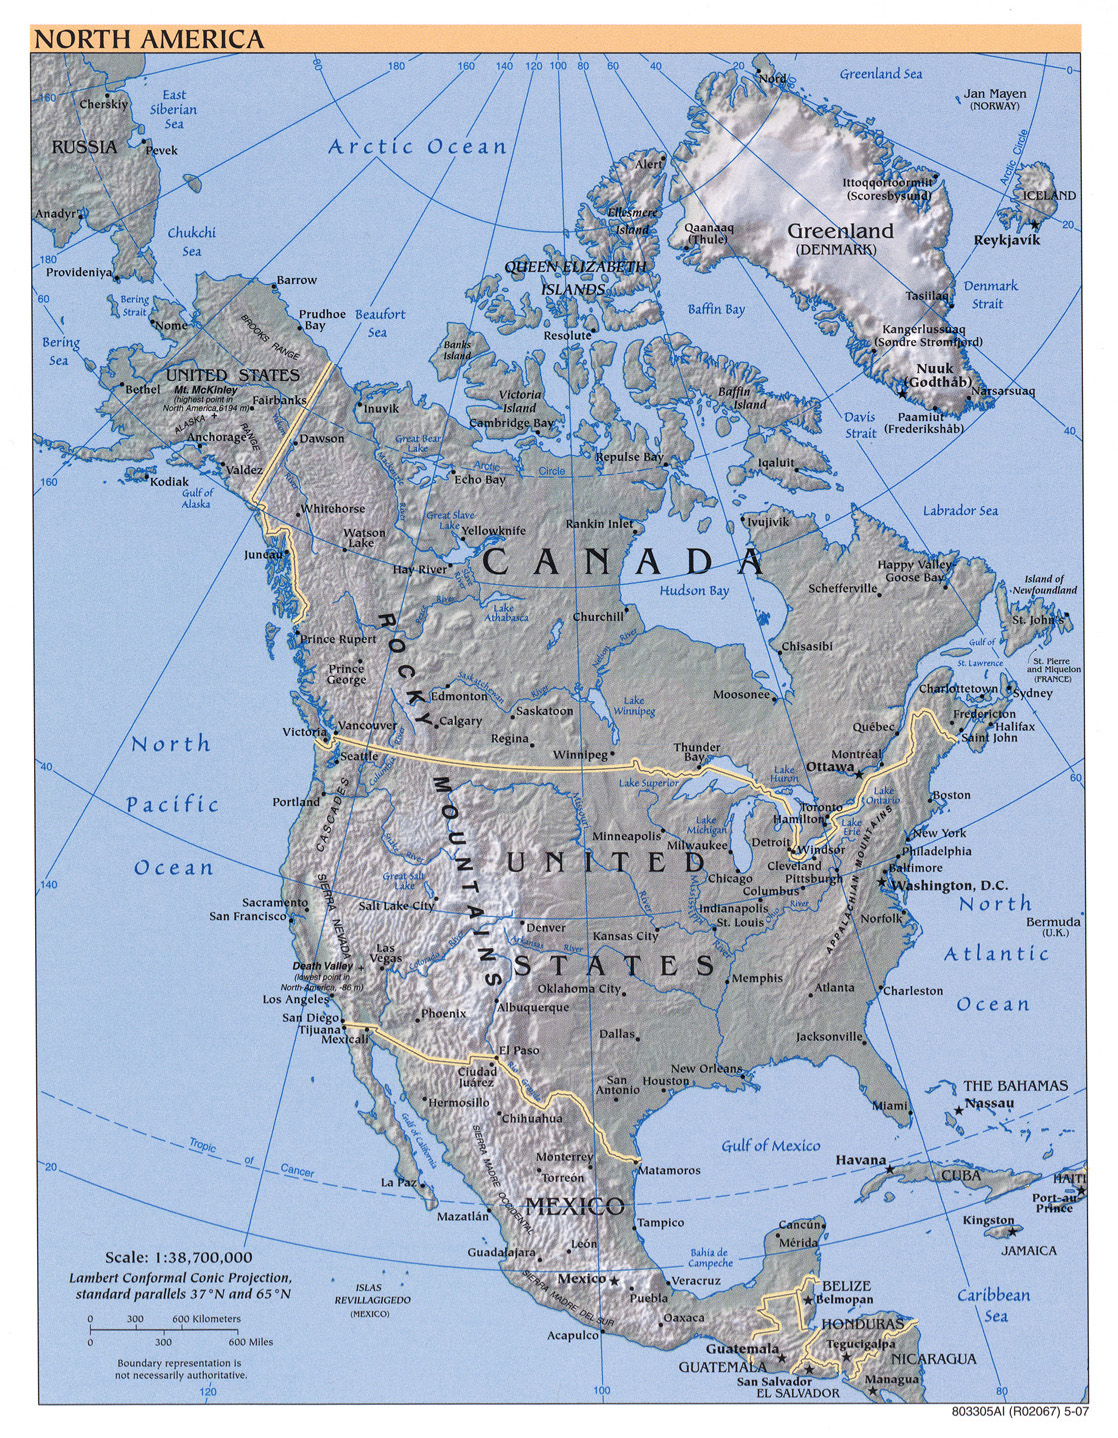 Free Download Americas Maps - Download map of north america